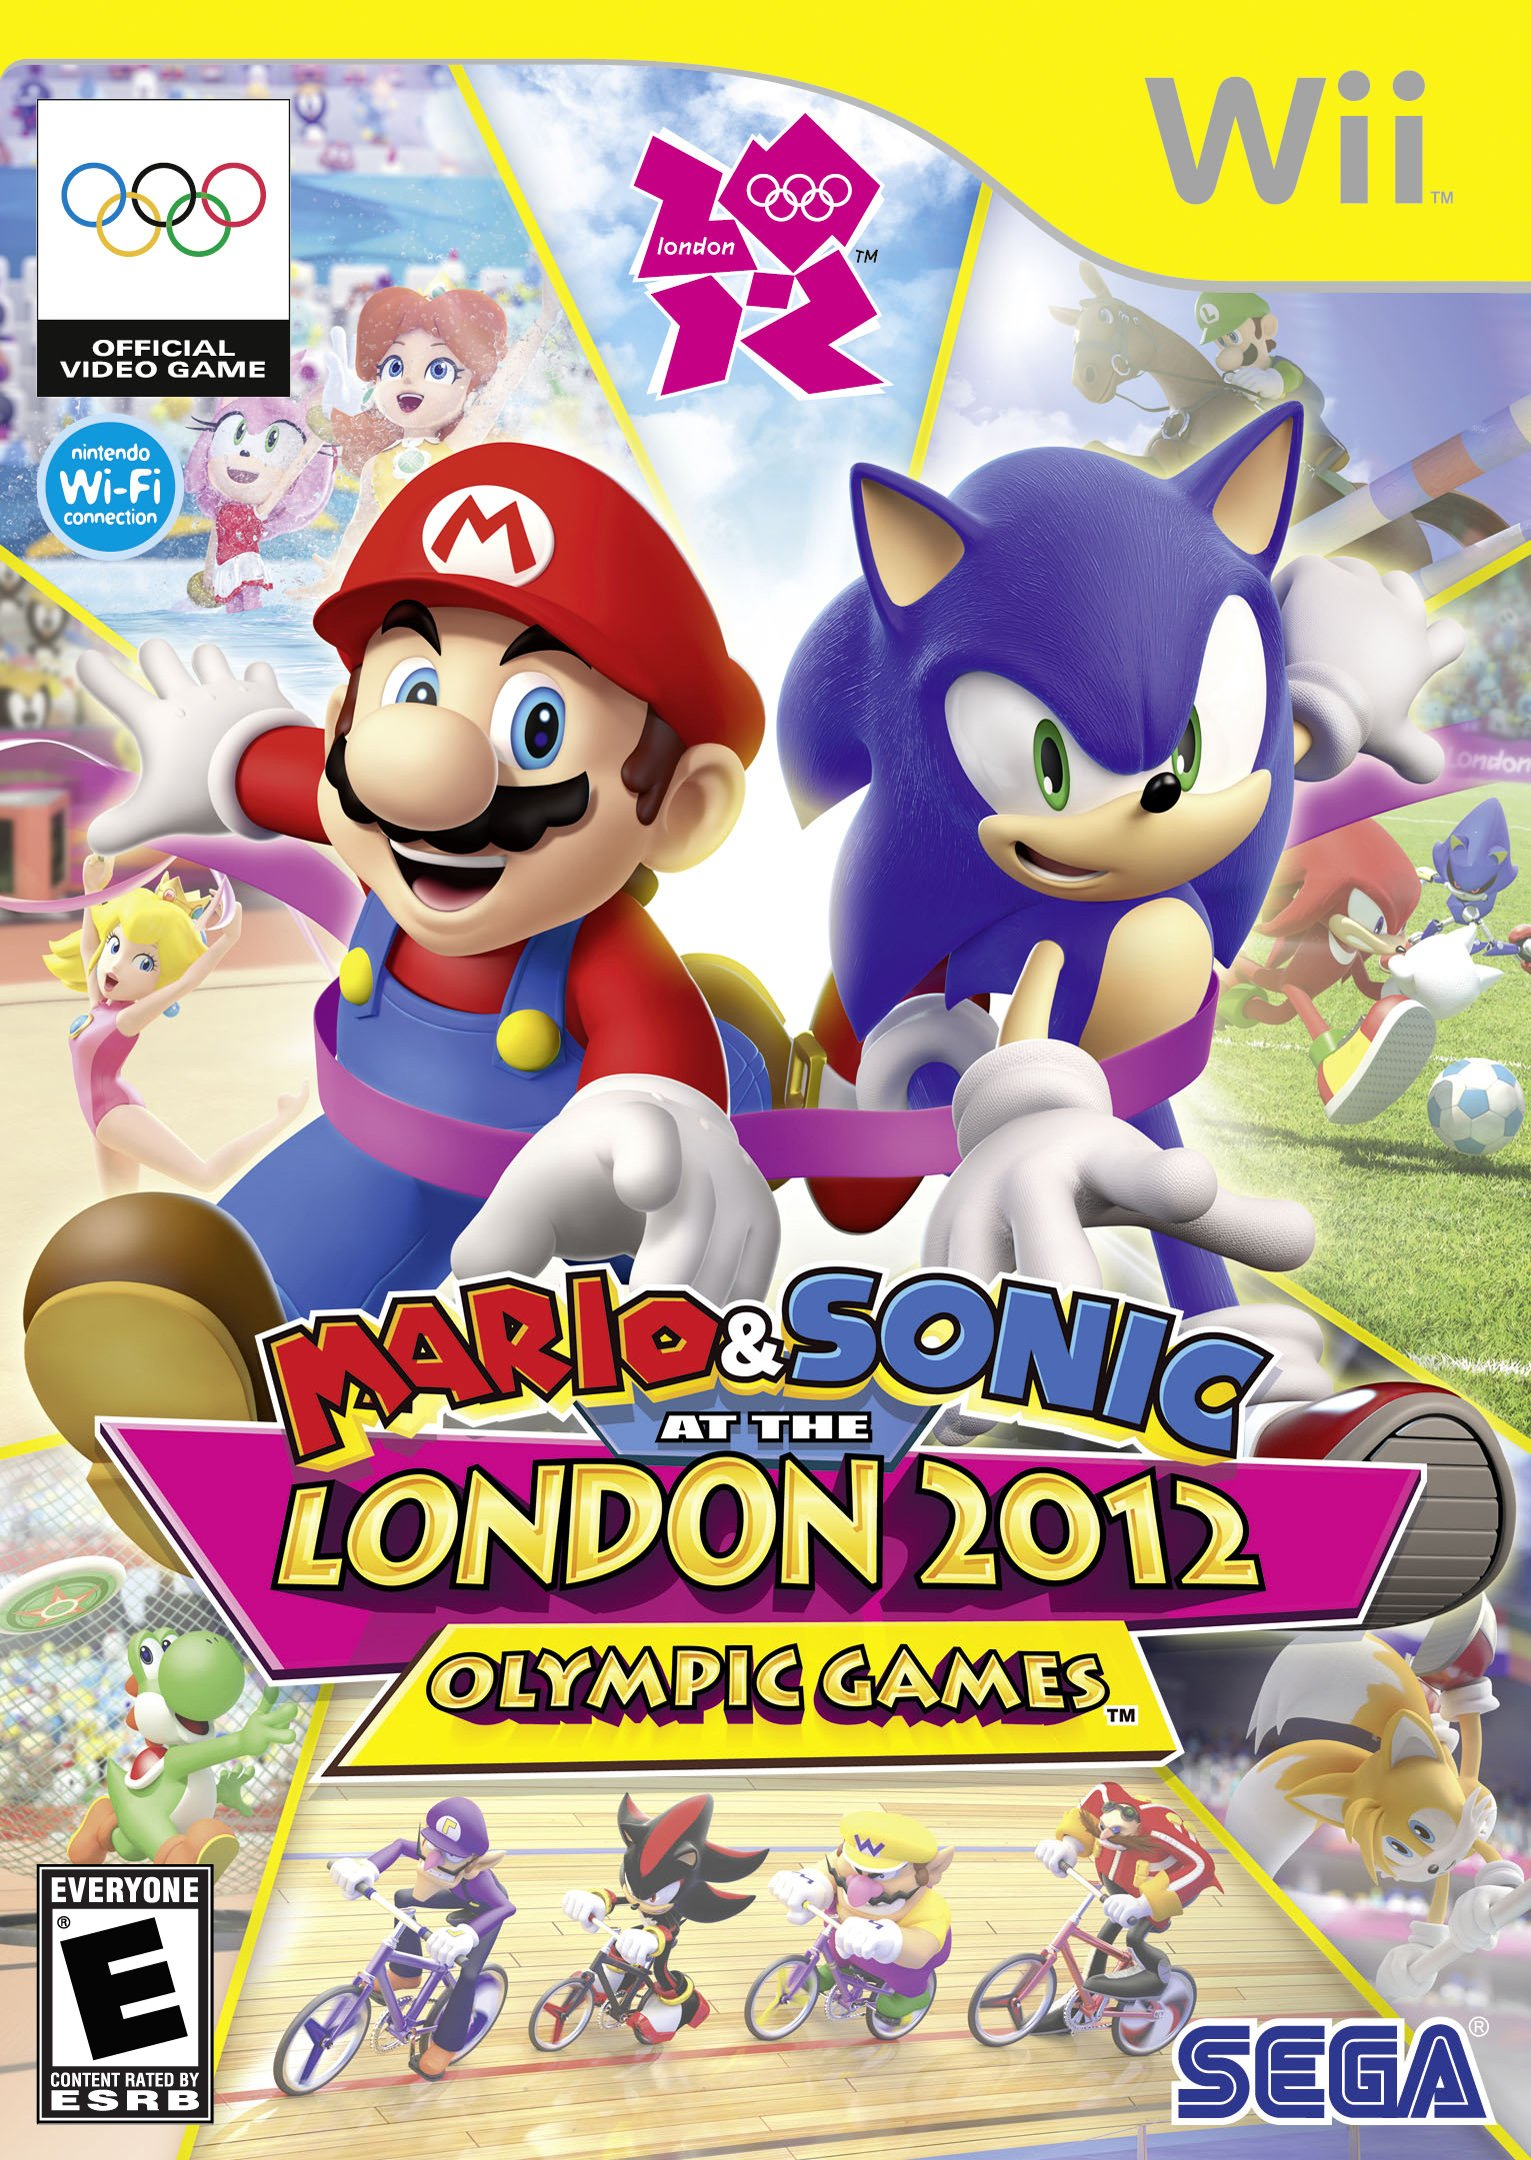 Mario & Sonic at the London 2012 Olympic Games